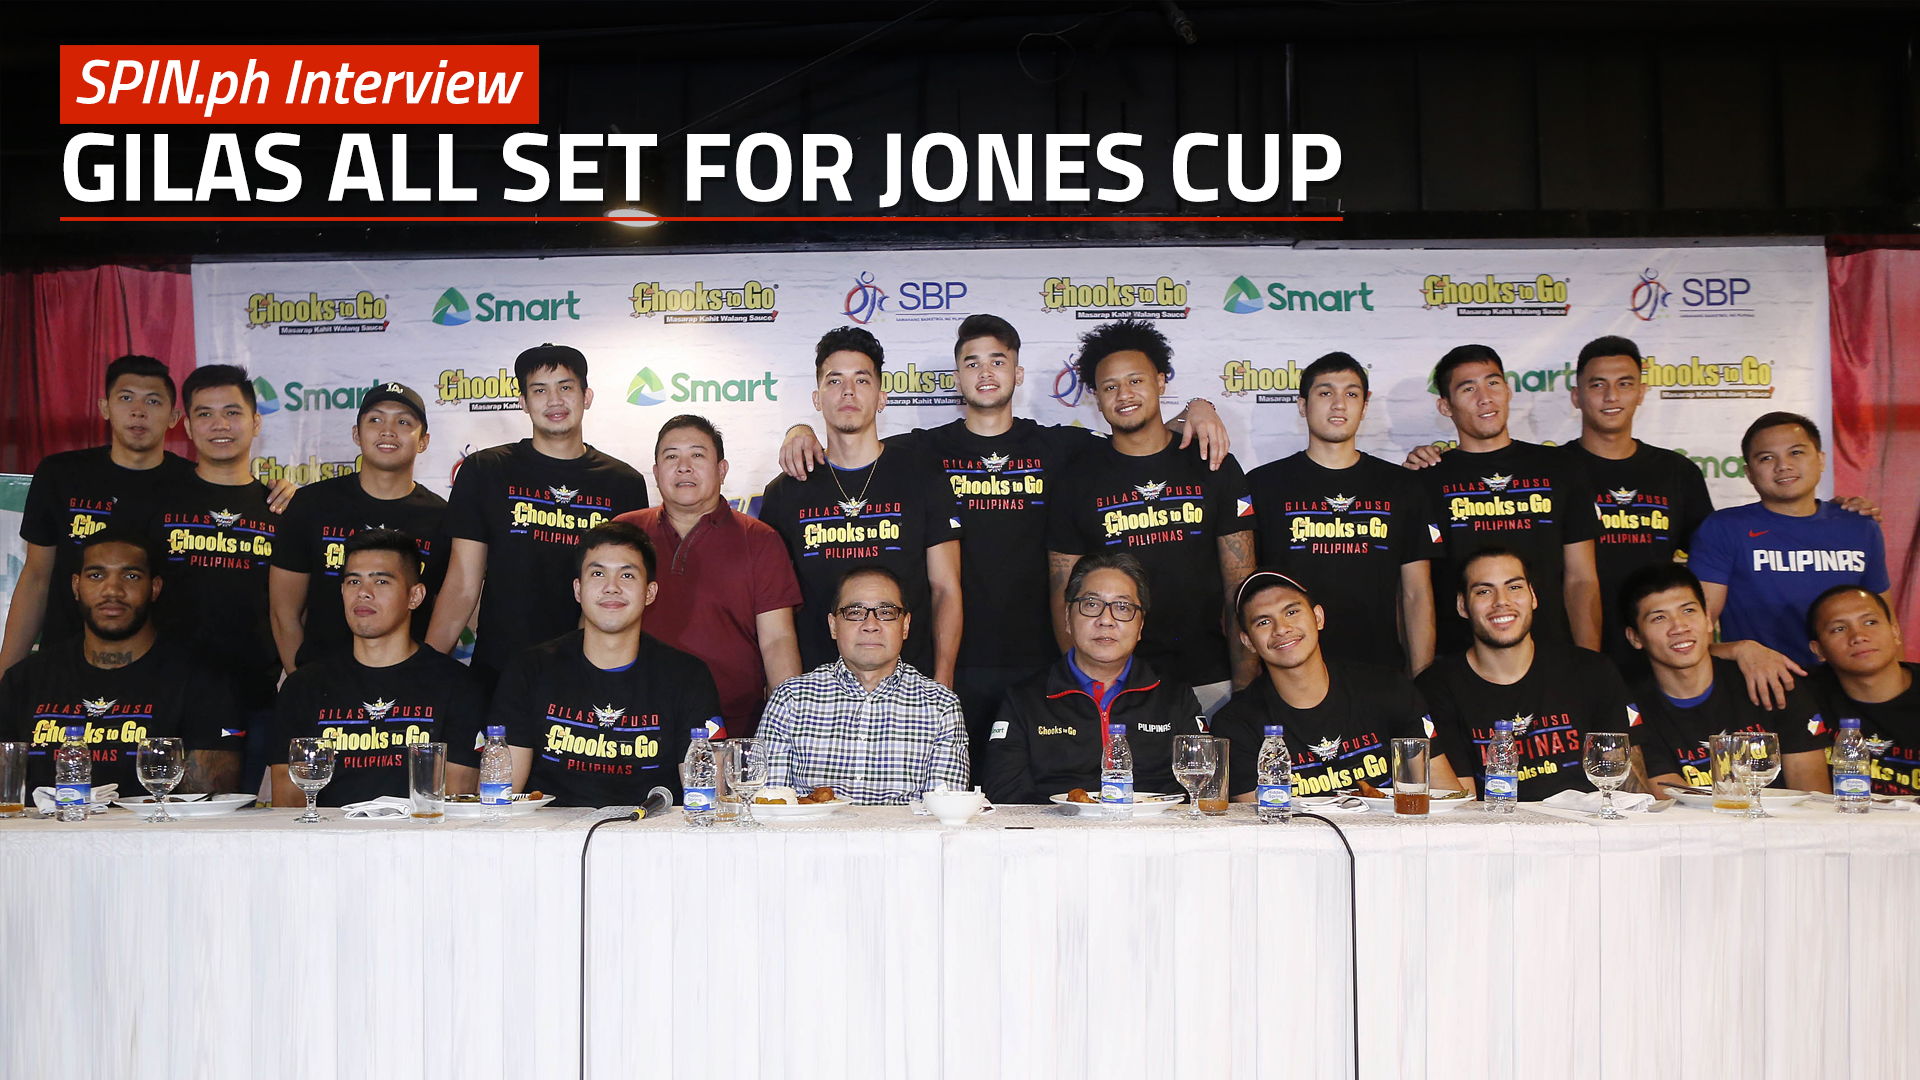 SPIN.ph Interview: Gilas all set for Jones Cup